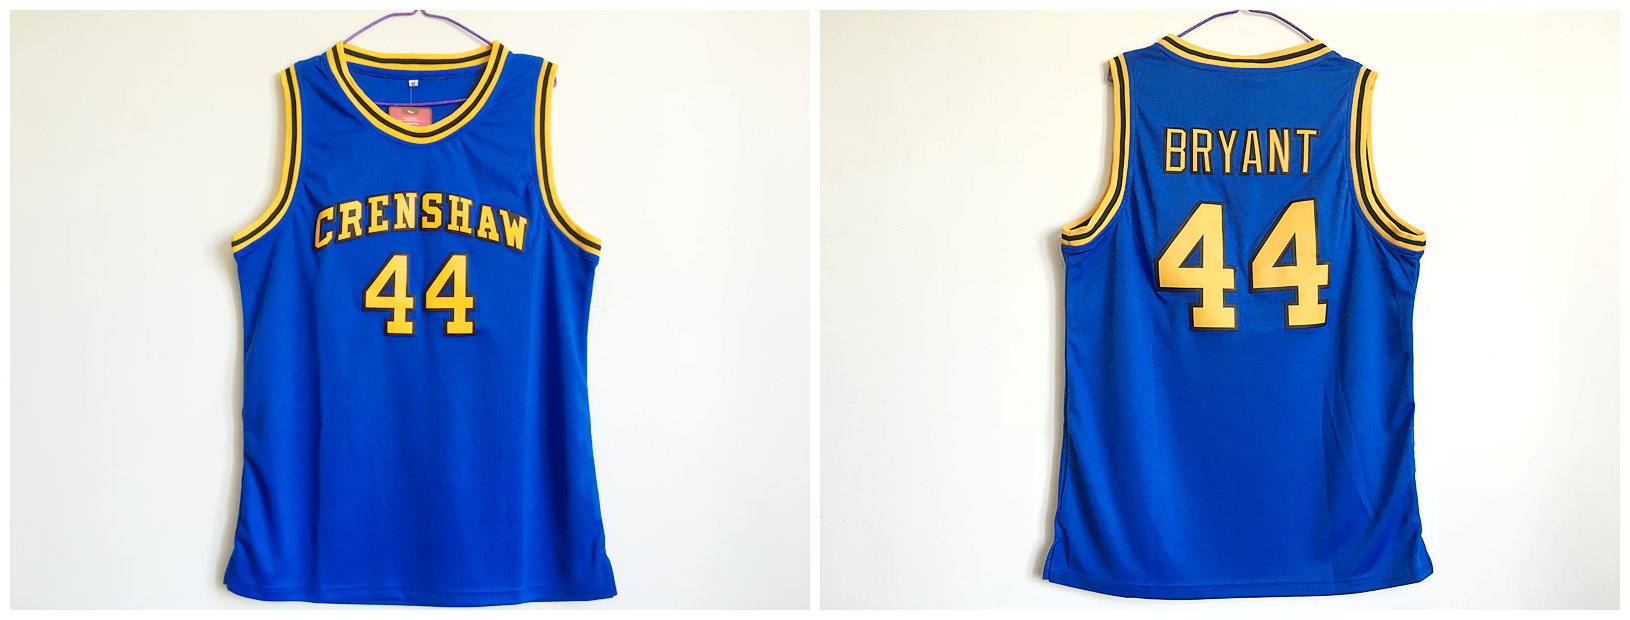 Crenshaw High School 44 Kobe Bryant Blue Basketball Jersey